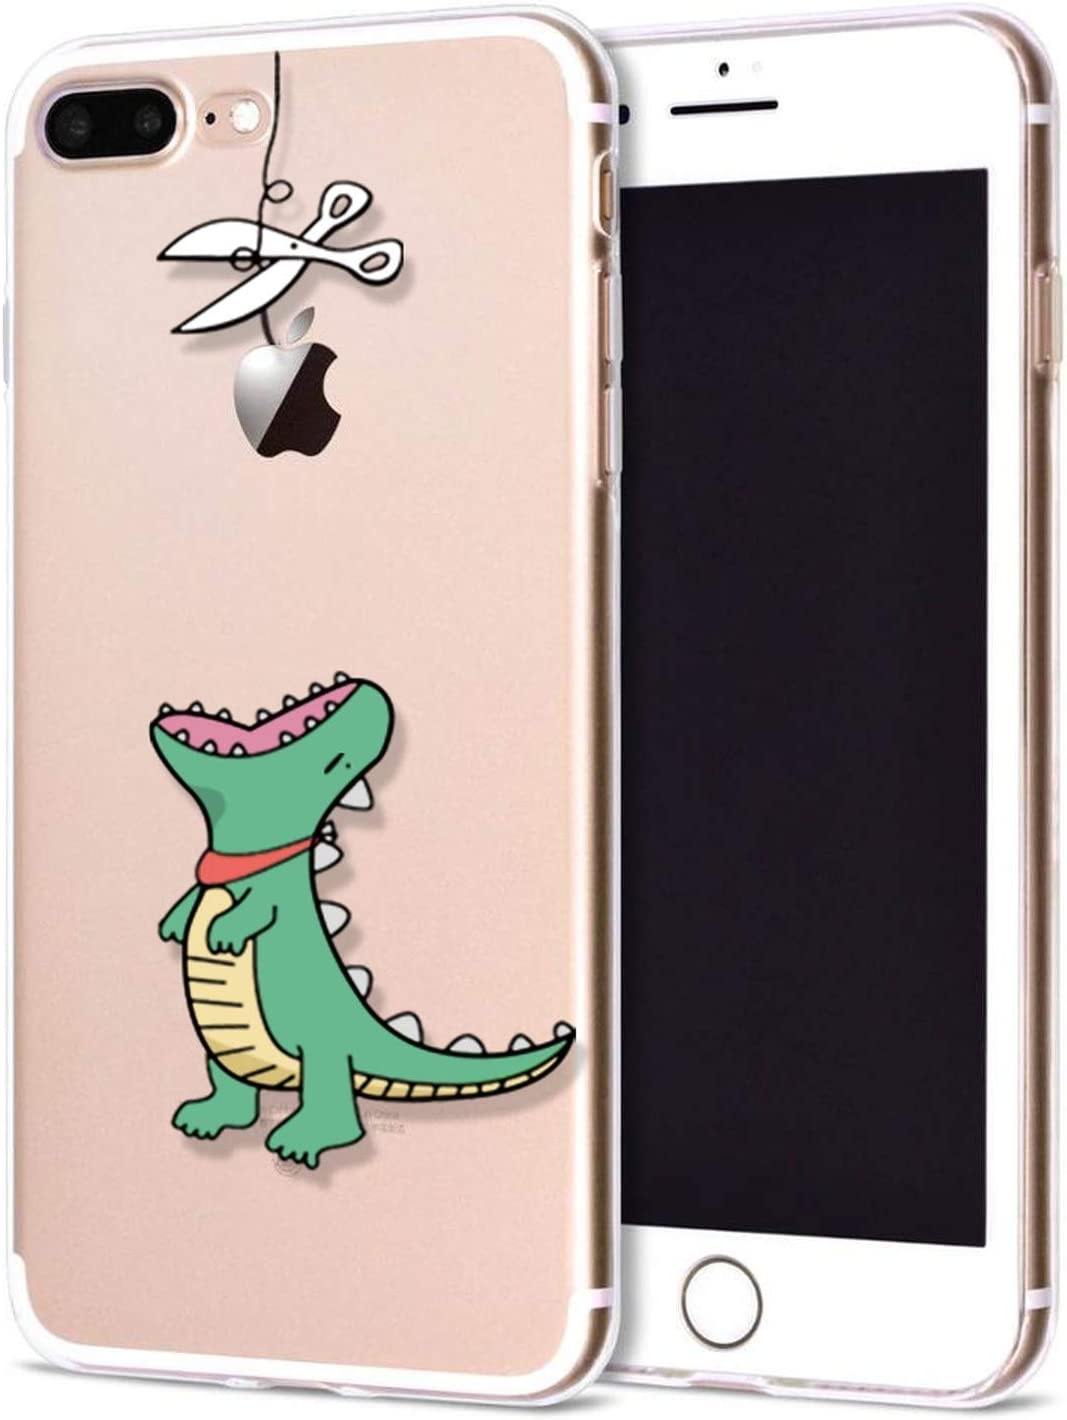 Fitted Case for iPhone 7 Case 6 S 8 Plus Silicone Shell Cute Woman Phone Case for iPhone 6 S X 5 S Se Coque for iPhone 6 Cover,Dinosaur,for iPhone 8